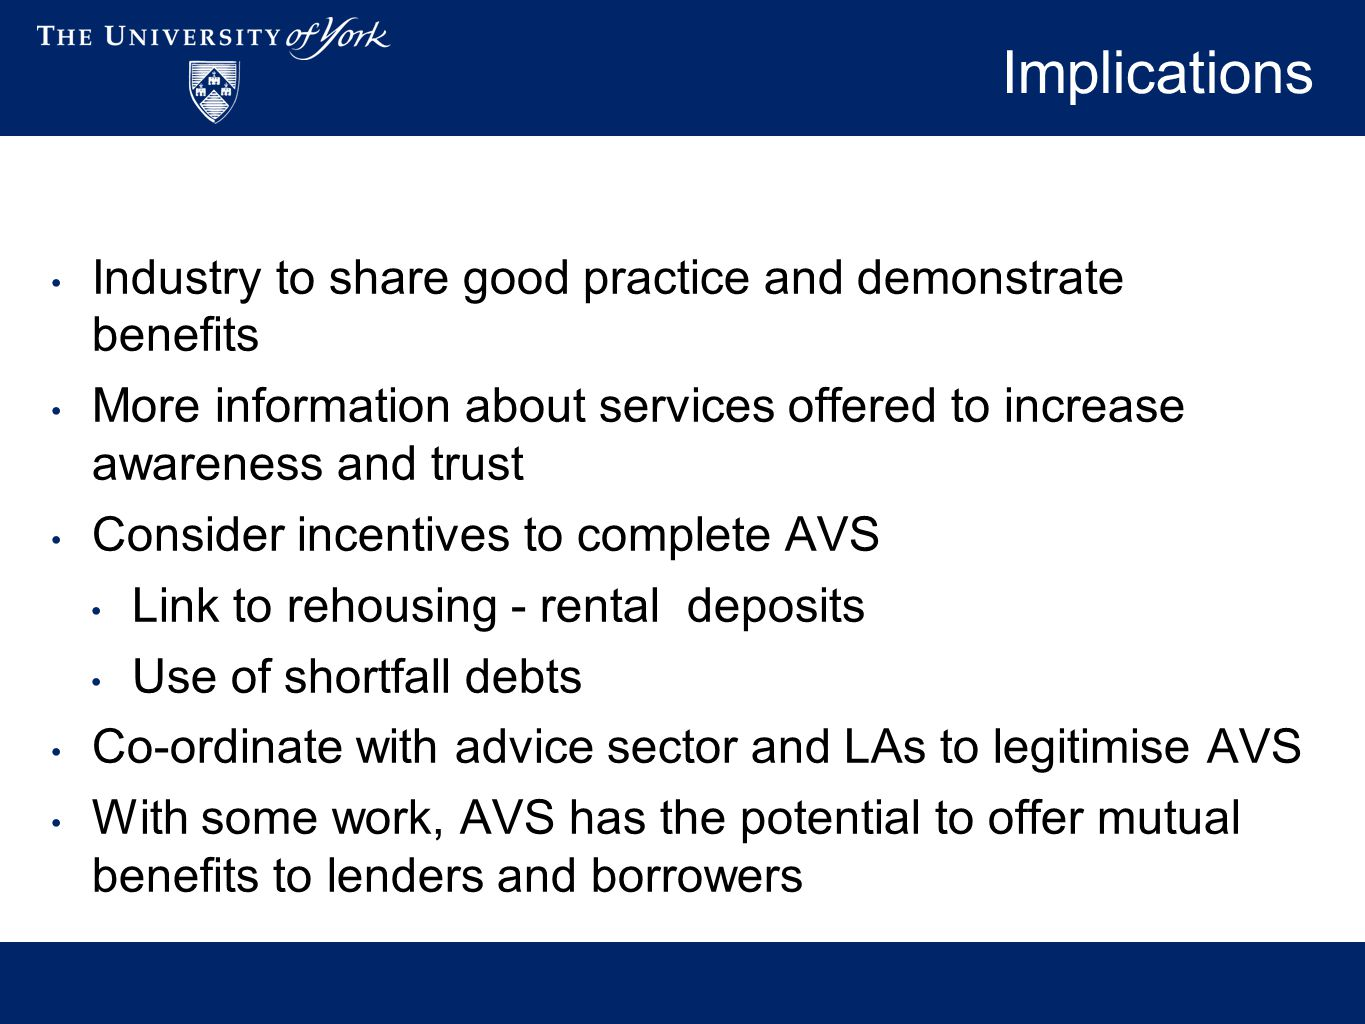 Implications Industry to share good practice and demonstrate benefits More information about services offered to increase awareness and trust Consider incentives to complete AVS Link to rehousing - rental deposits Use of shortfall debts Co-ordinate with advice sector and LAs to legitimise AVS With some work, AVS has the potential to offer mutual benefits to lenders and borrowers